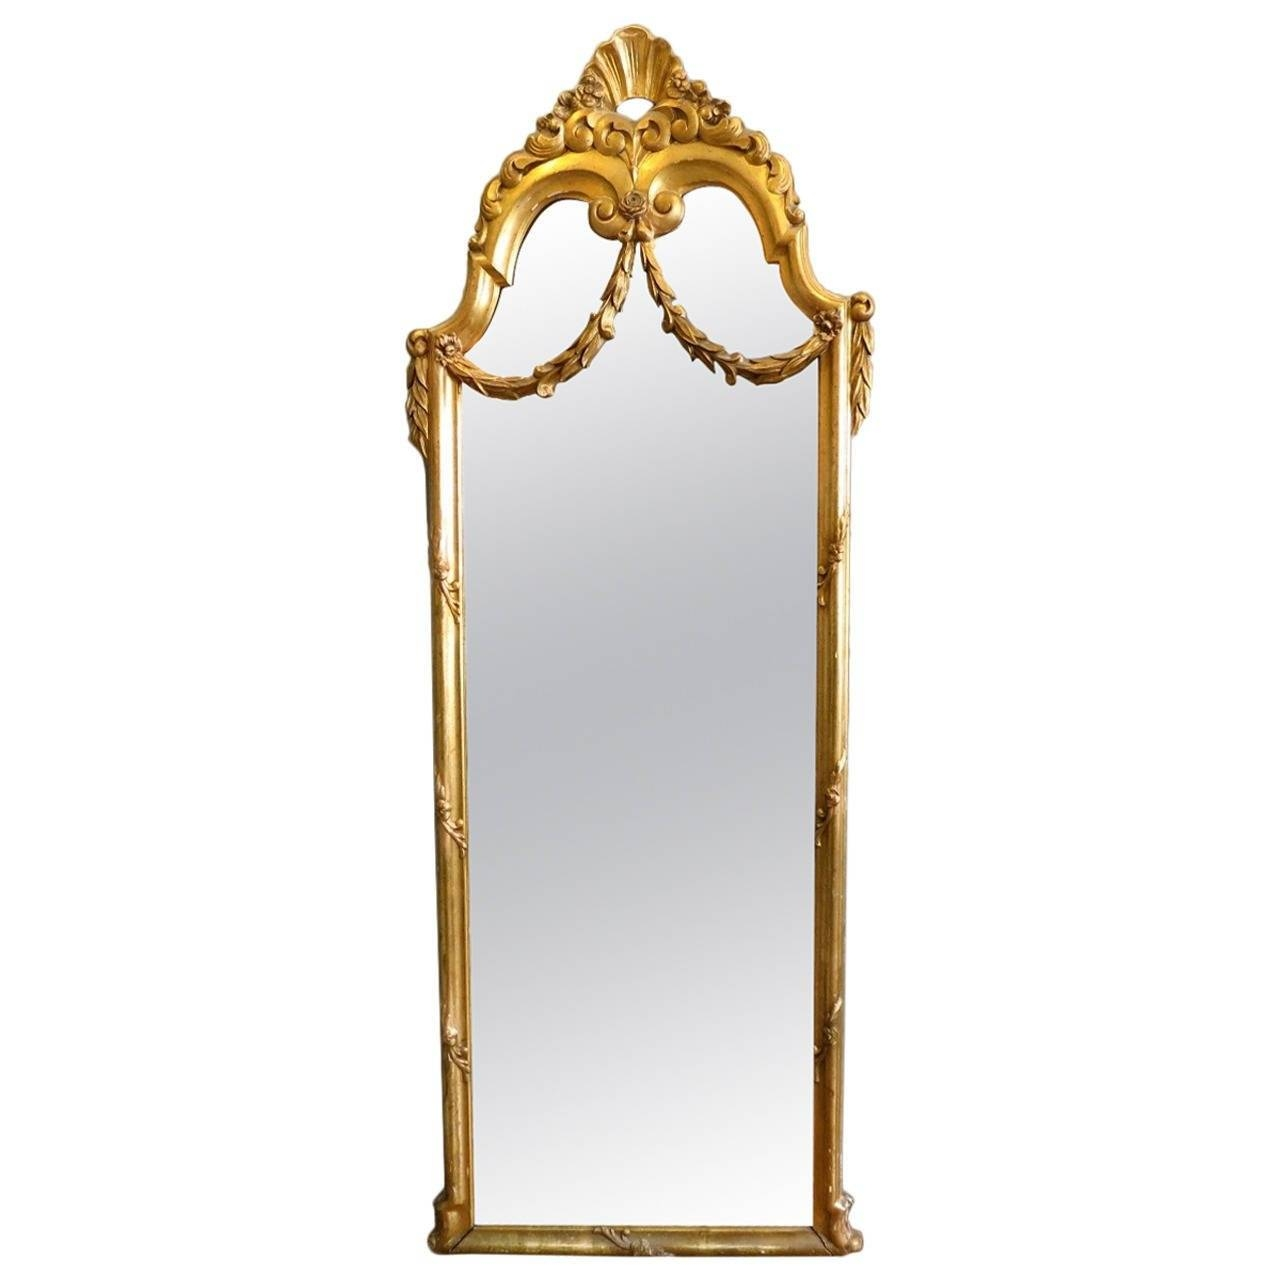 Antique French Gold Gilt Floor Standing Mirror At 1Stdibs inside Gilt Mirrors (Image 5 of 25)